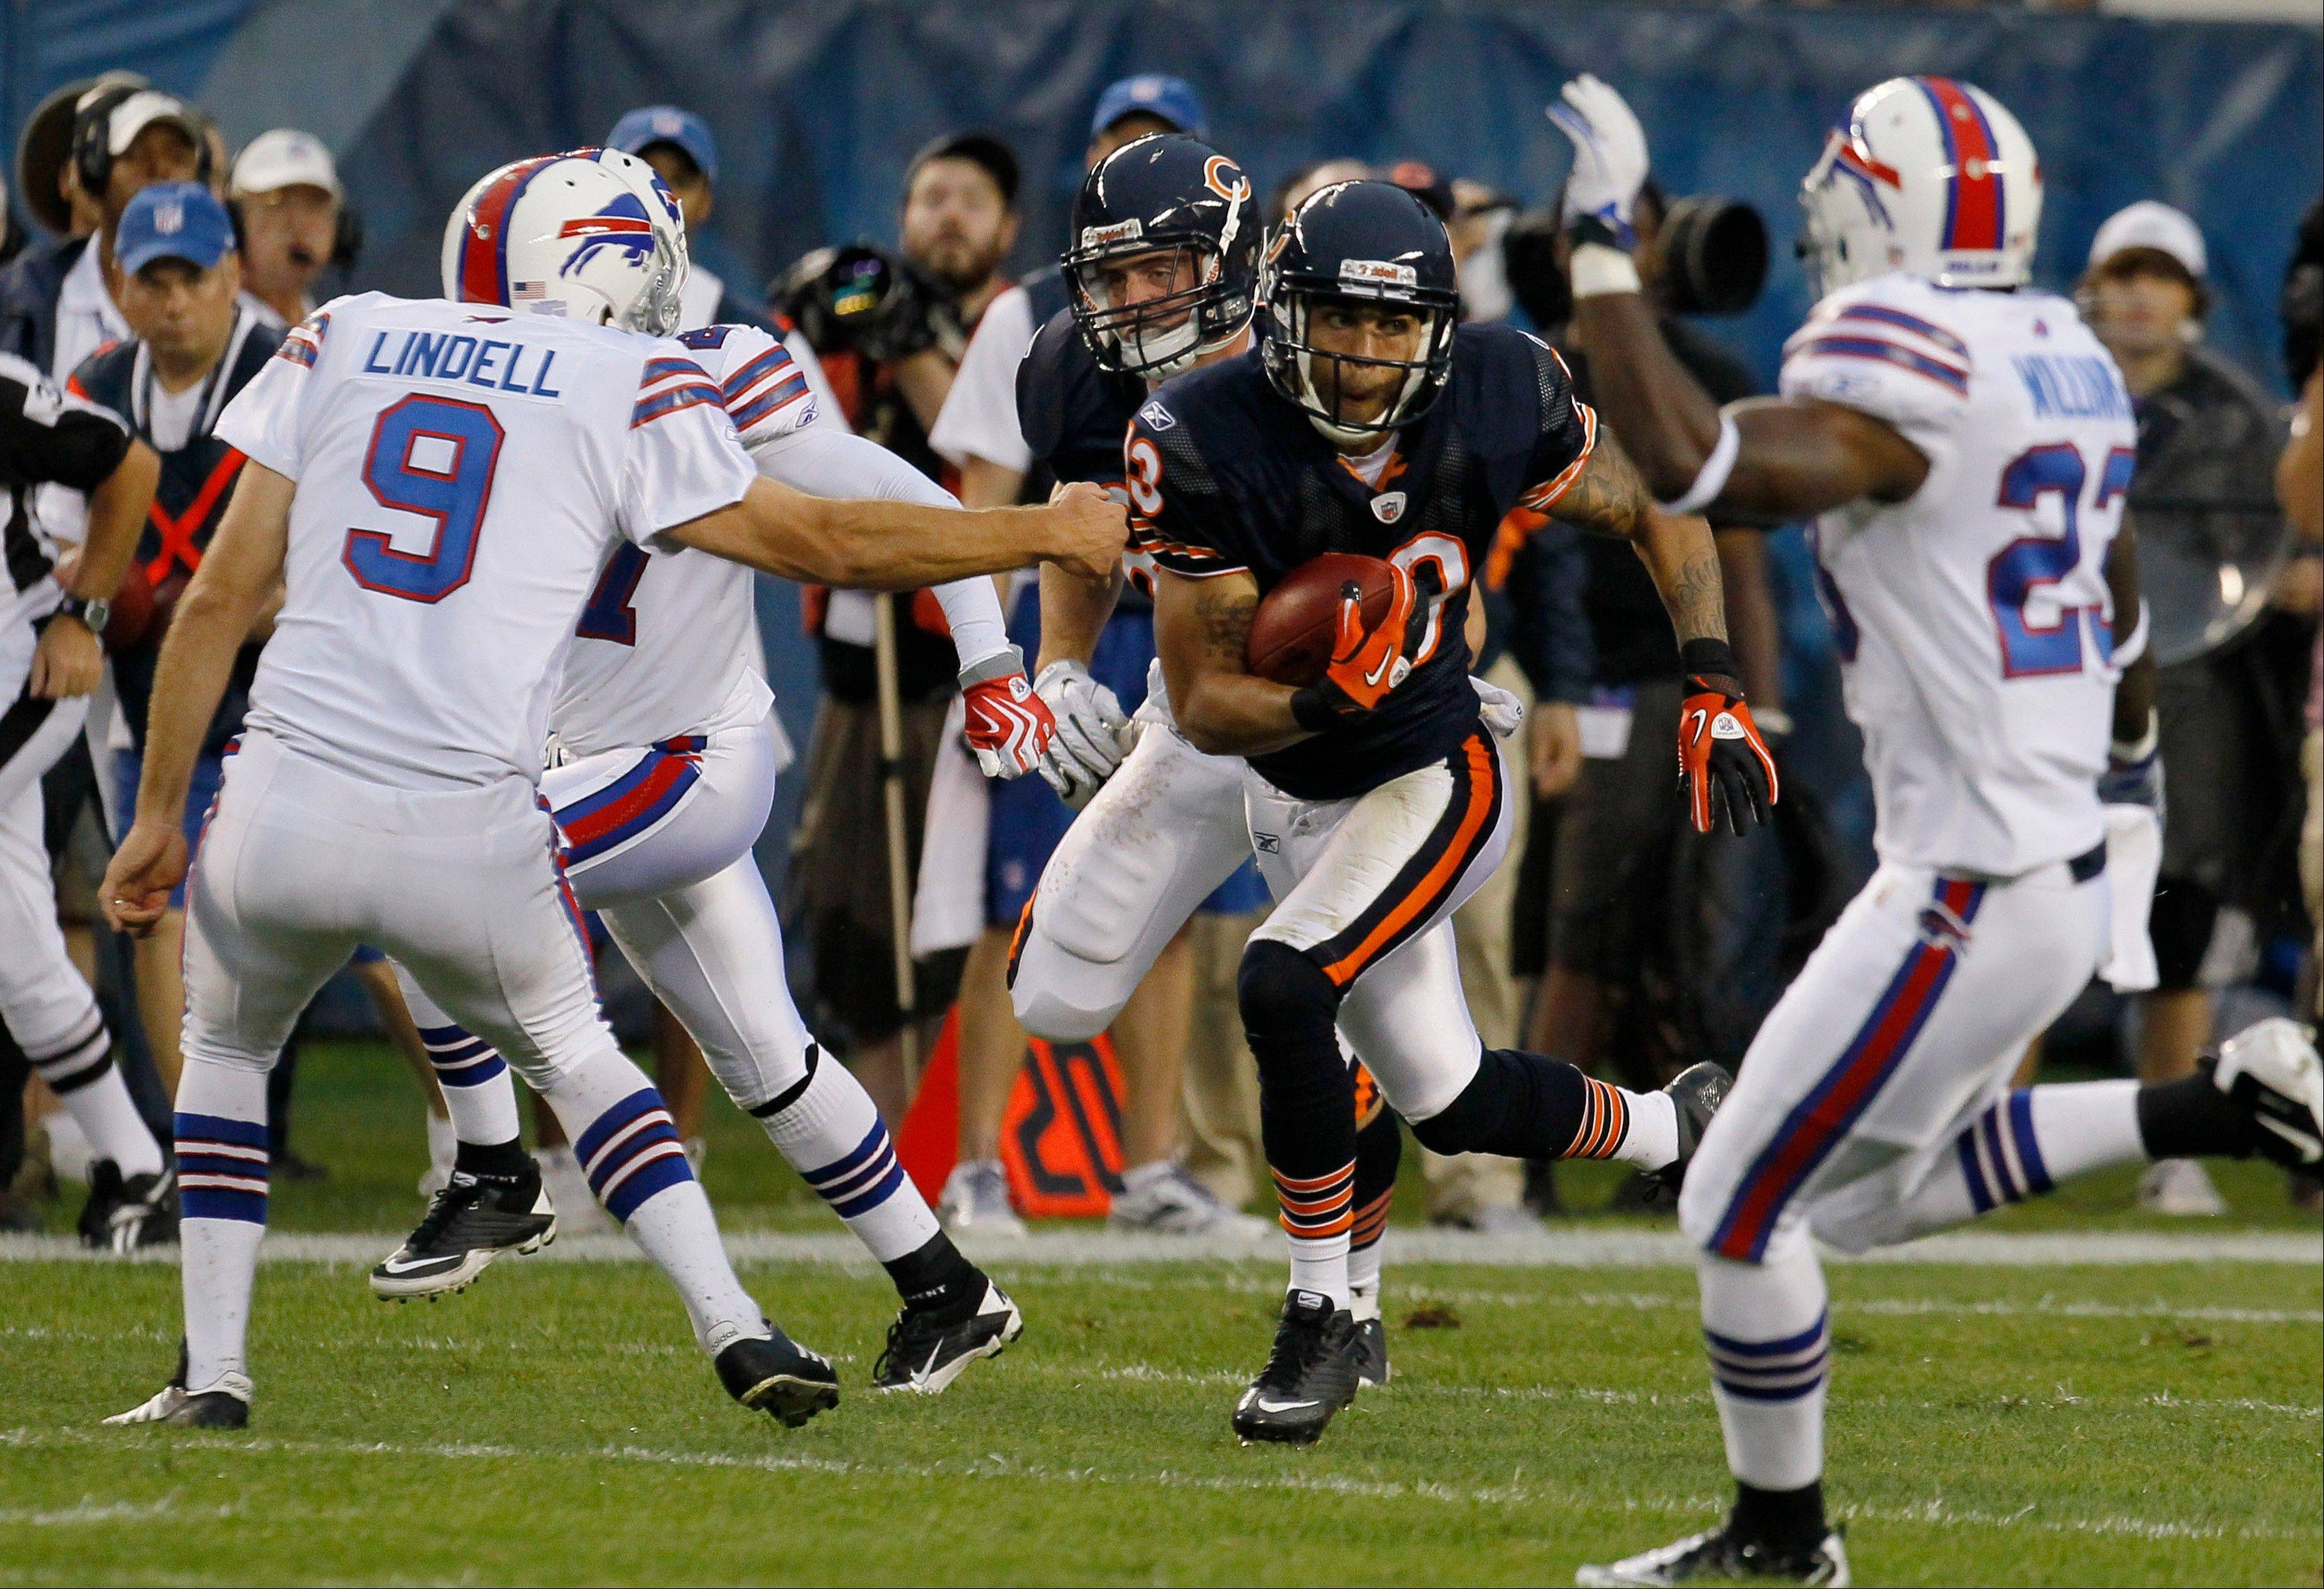 Chicago Bears wide receiver Johnny Knox (13) runs for a 70-yard kickoff return against Buffalo Bills place-kicker Rian Lindell (9) and Aaron Williams (23) in the first half.